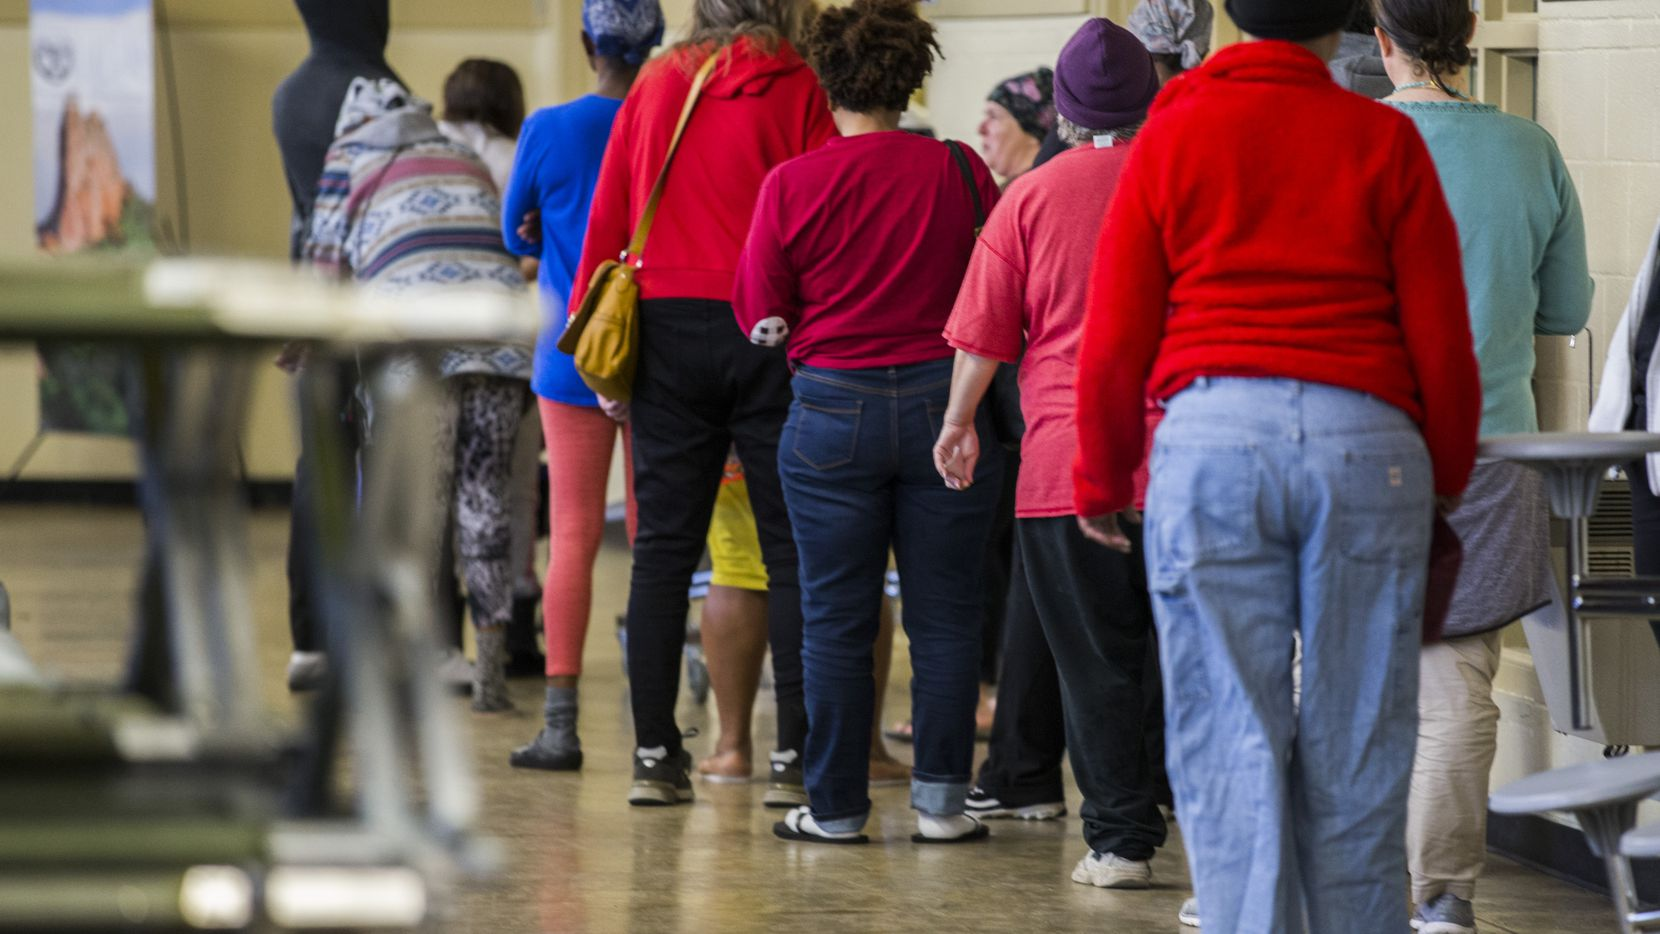 People waited in line for mail at Austin Street Center, which provides shelter and services for the homeless, in Dallas. Irving's inclement weather homeless shelter at Bear Creek Community Church will not open this year due to COVID-19.